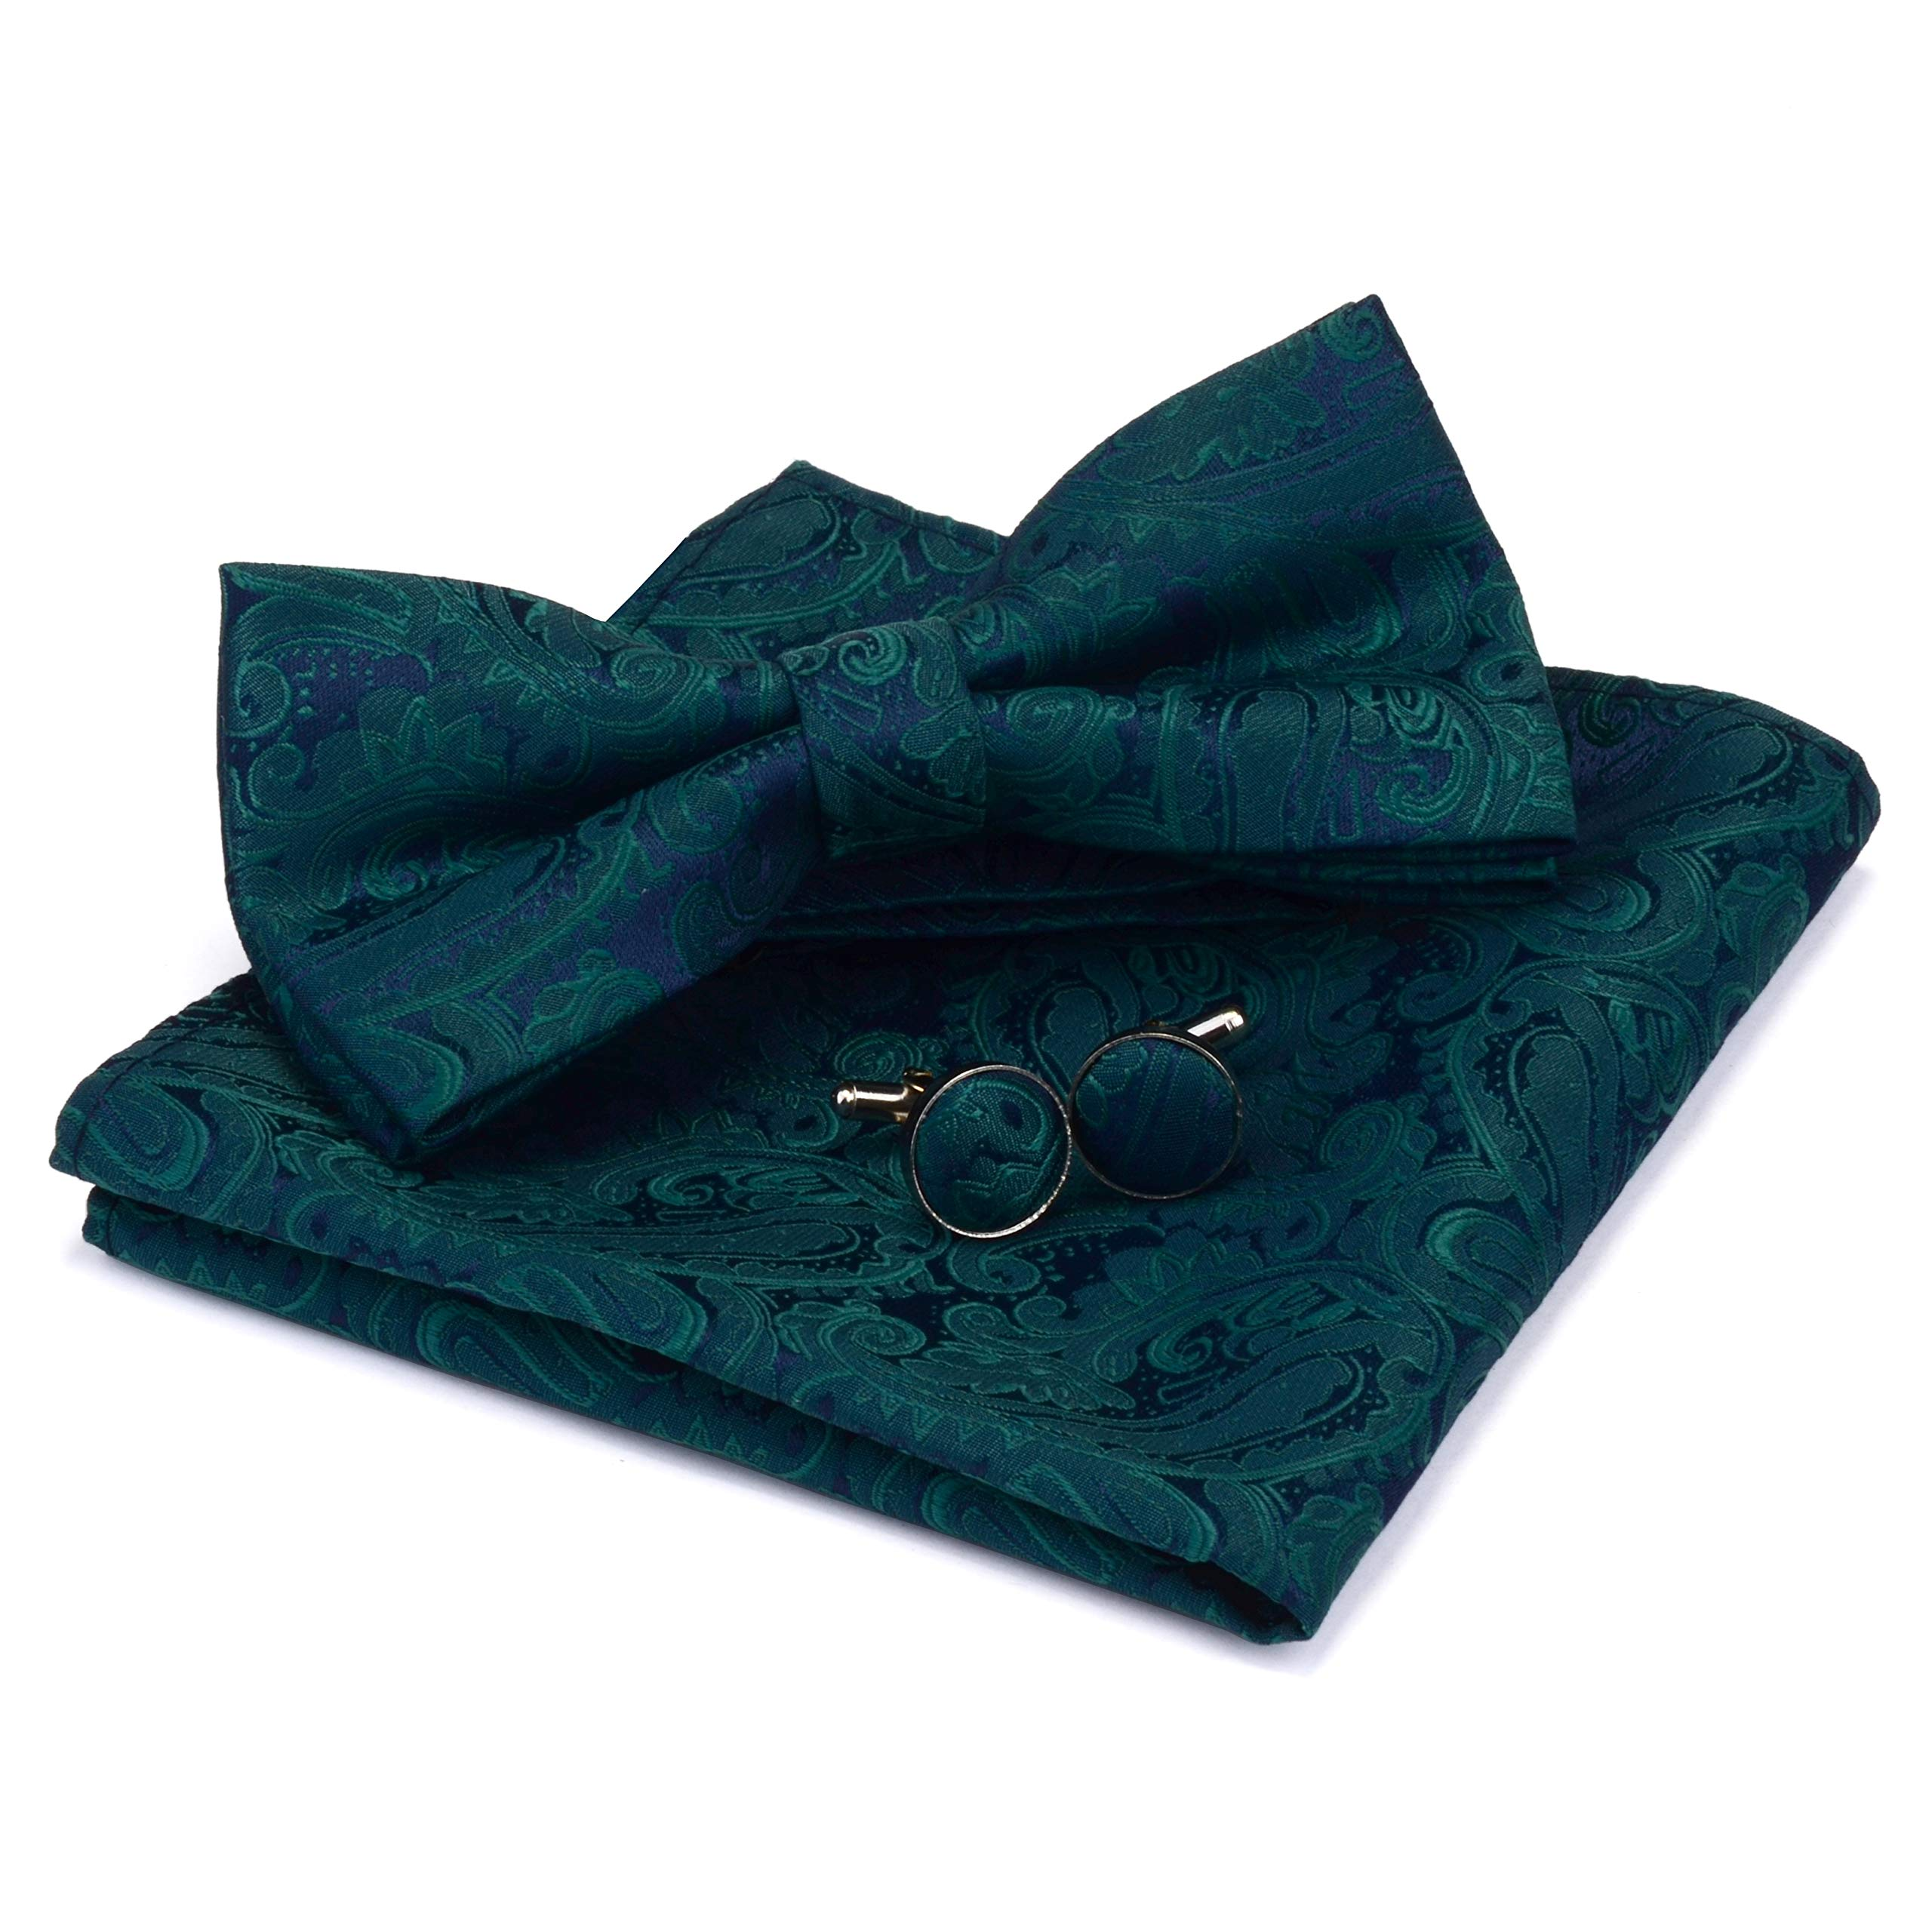 GUSLESON Brand New Paisley Adjustable Pre-tied Bow Tie and Pocket Square Cufflink Set with Gift Box